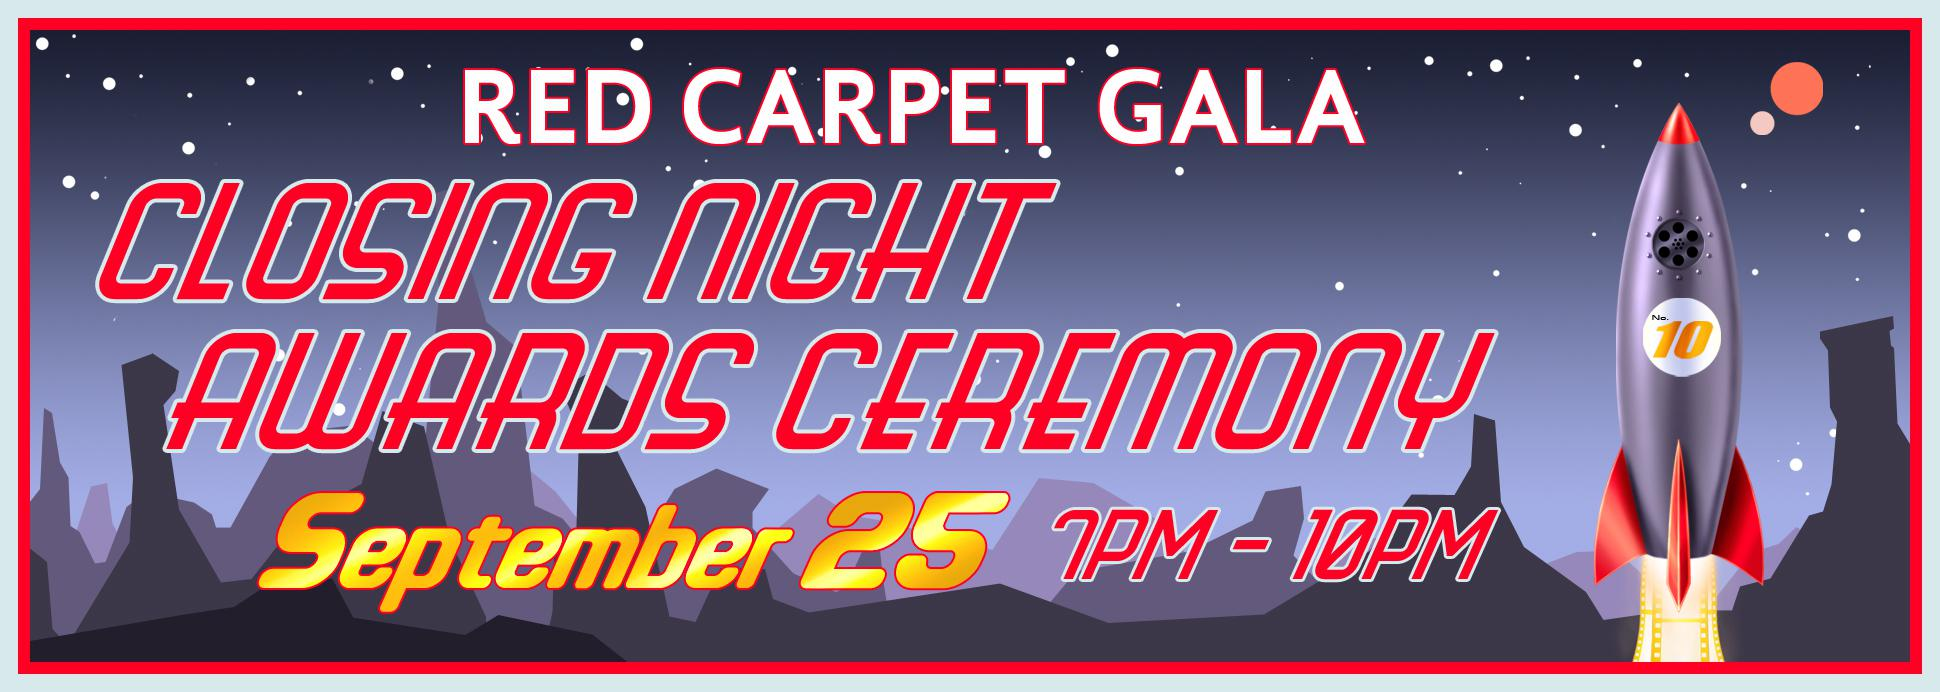 Red Carpet Gala and Awards Ceremony